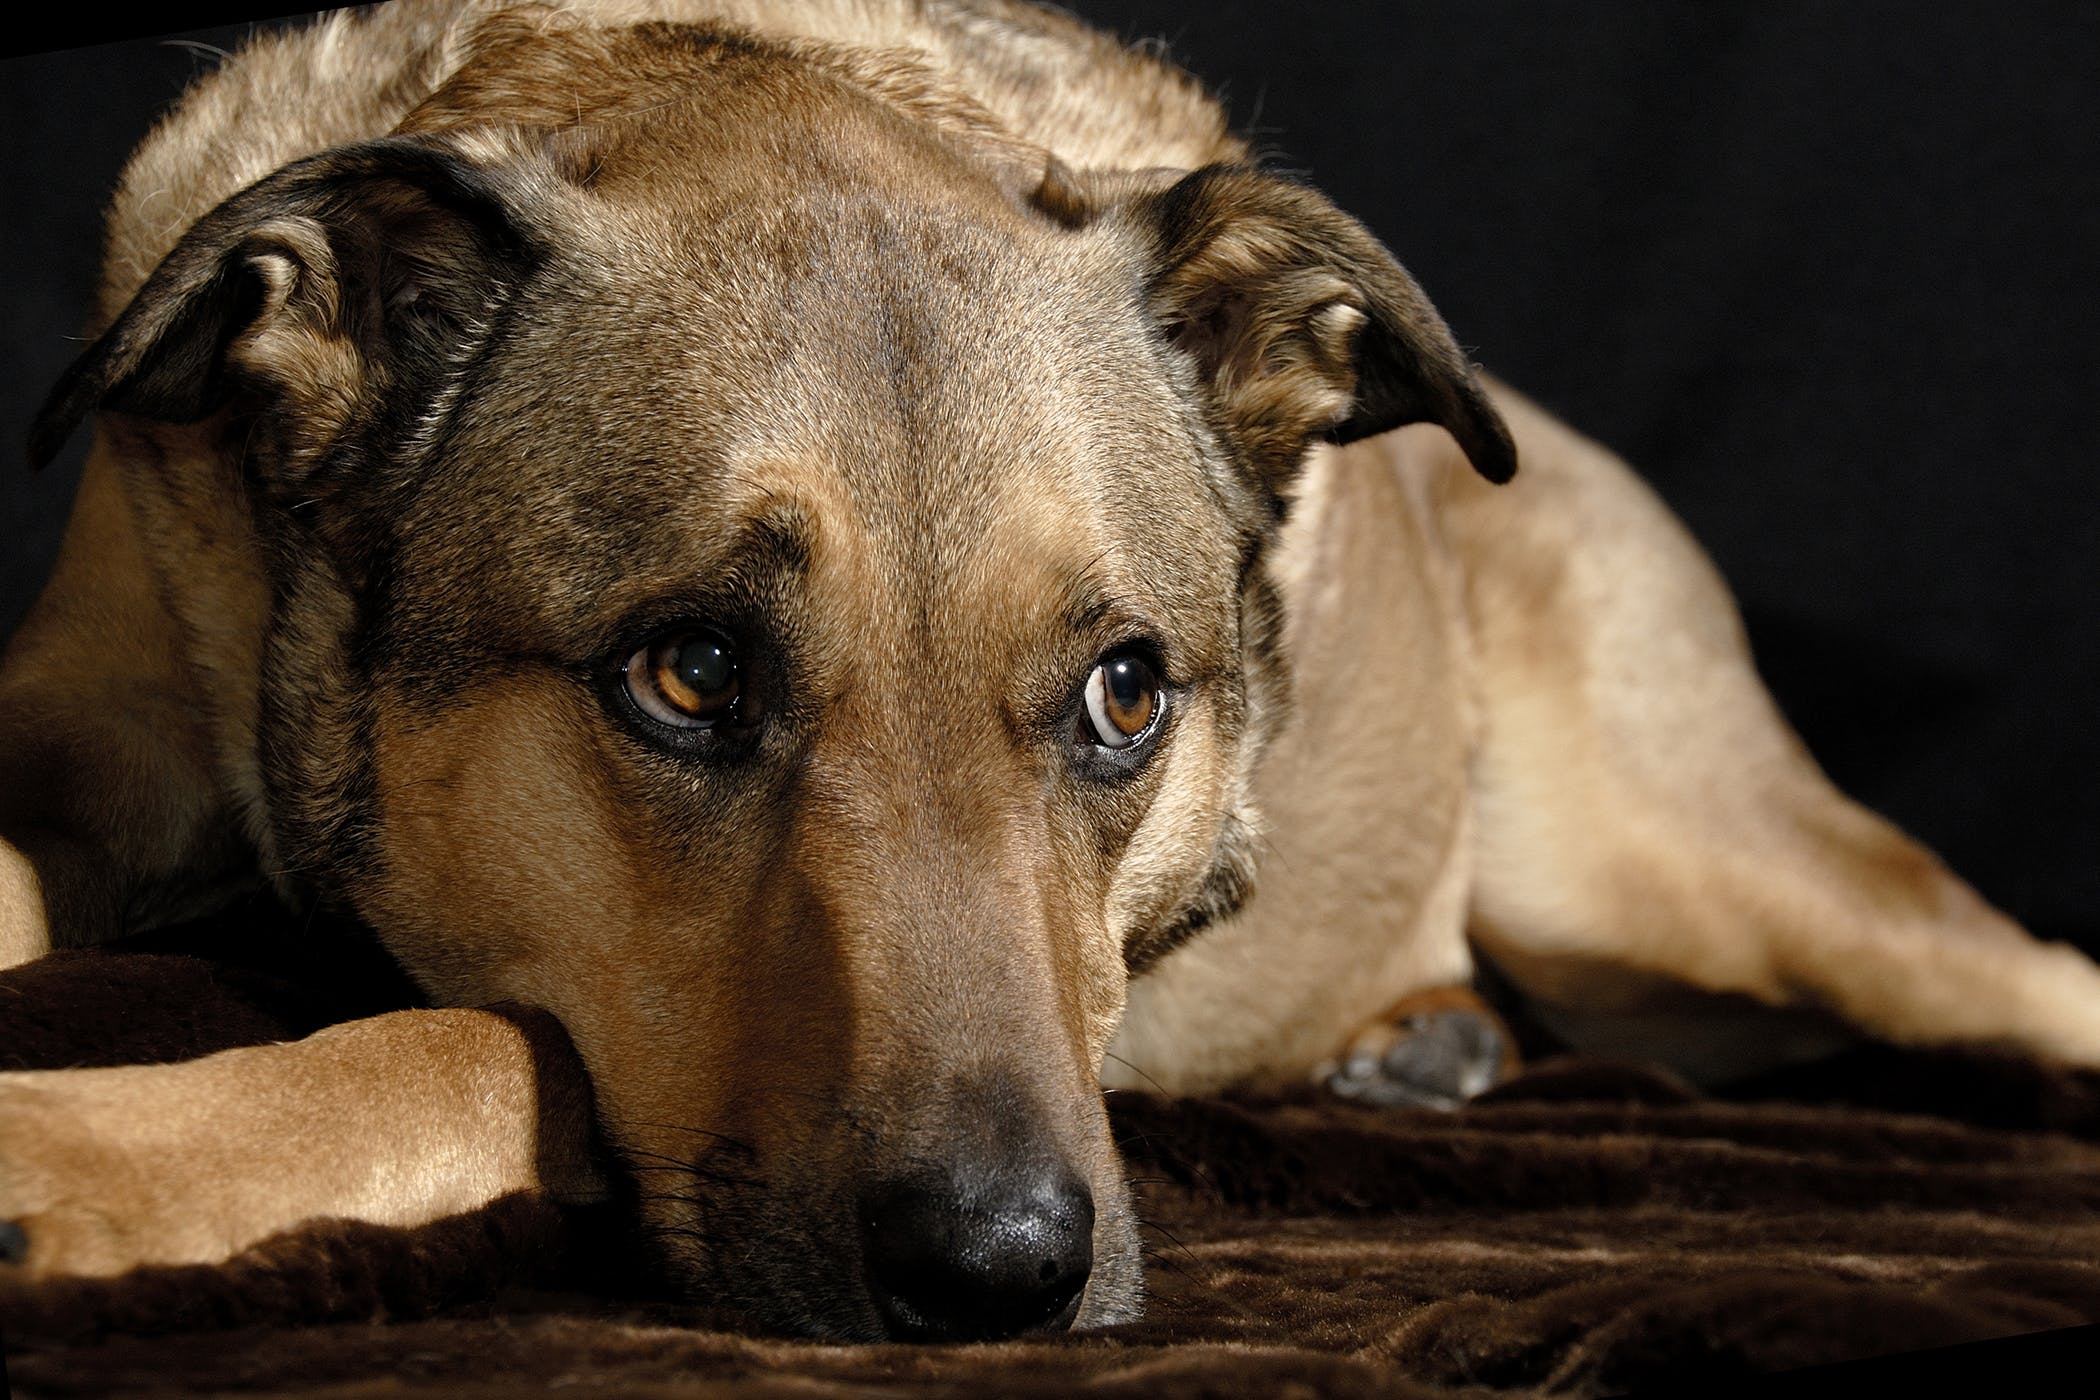 Renal Dysplasia in Dogs - Symptoms, Causes, Diagnosis, Treatment